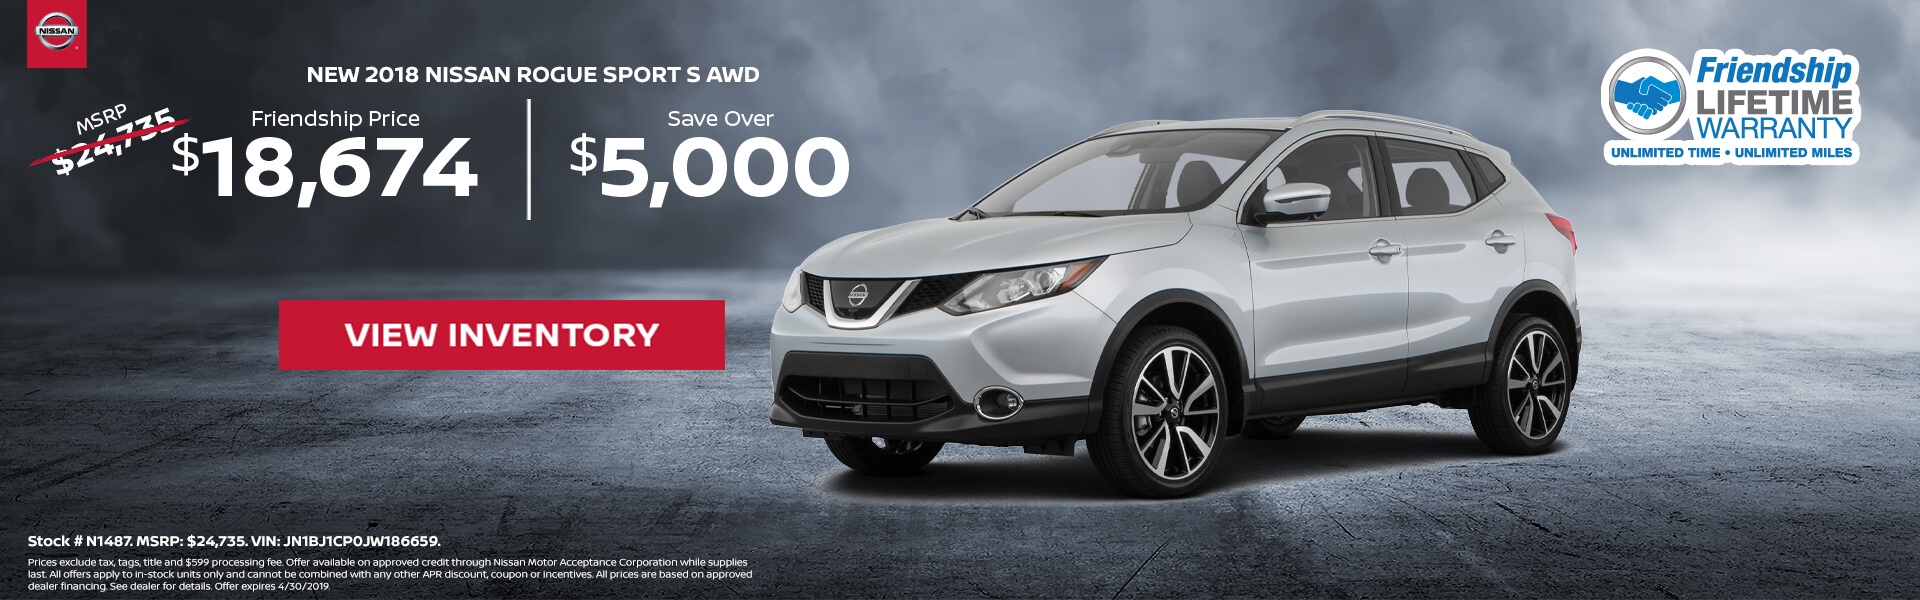 Nissan Rogue Sport $18,675 Purchase